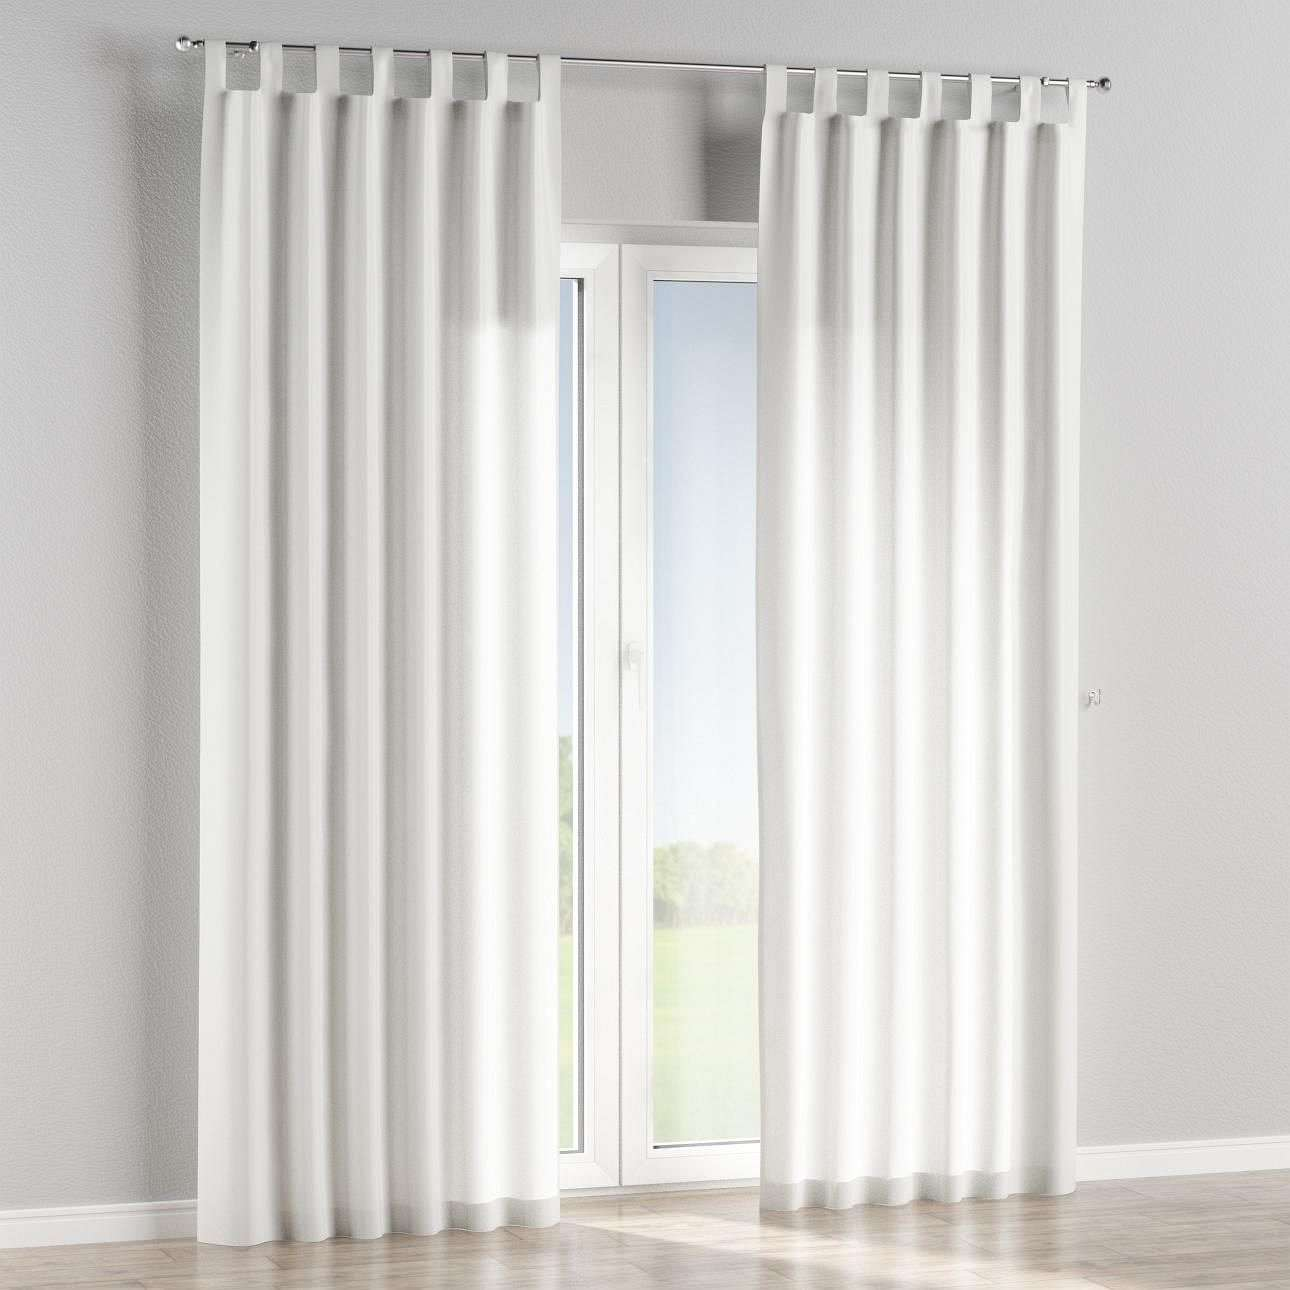 Tab top curtains in collection Cardiff, fabric: 136-24